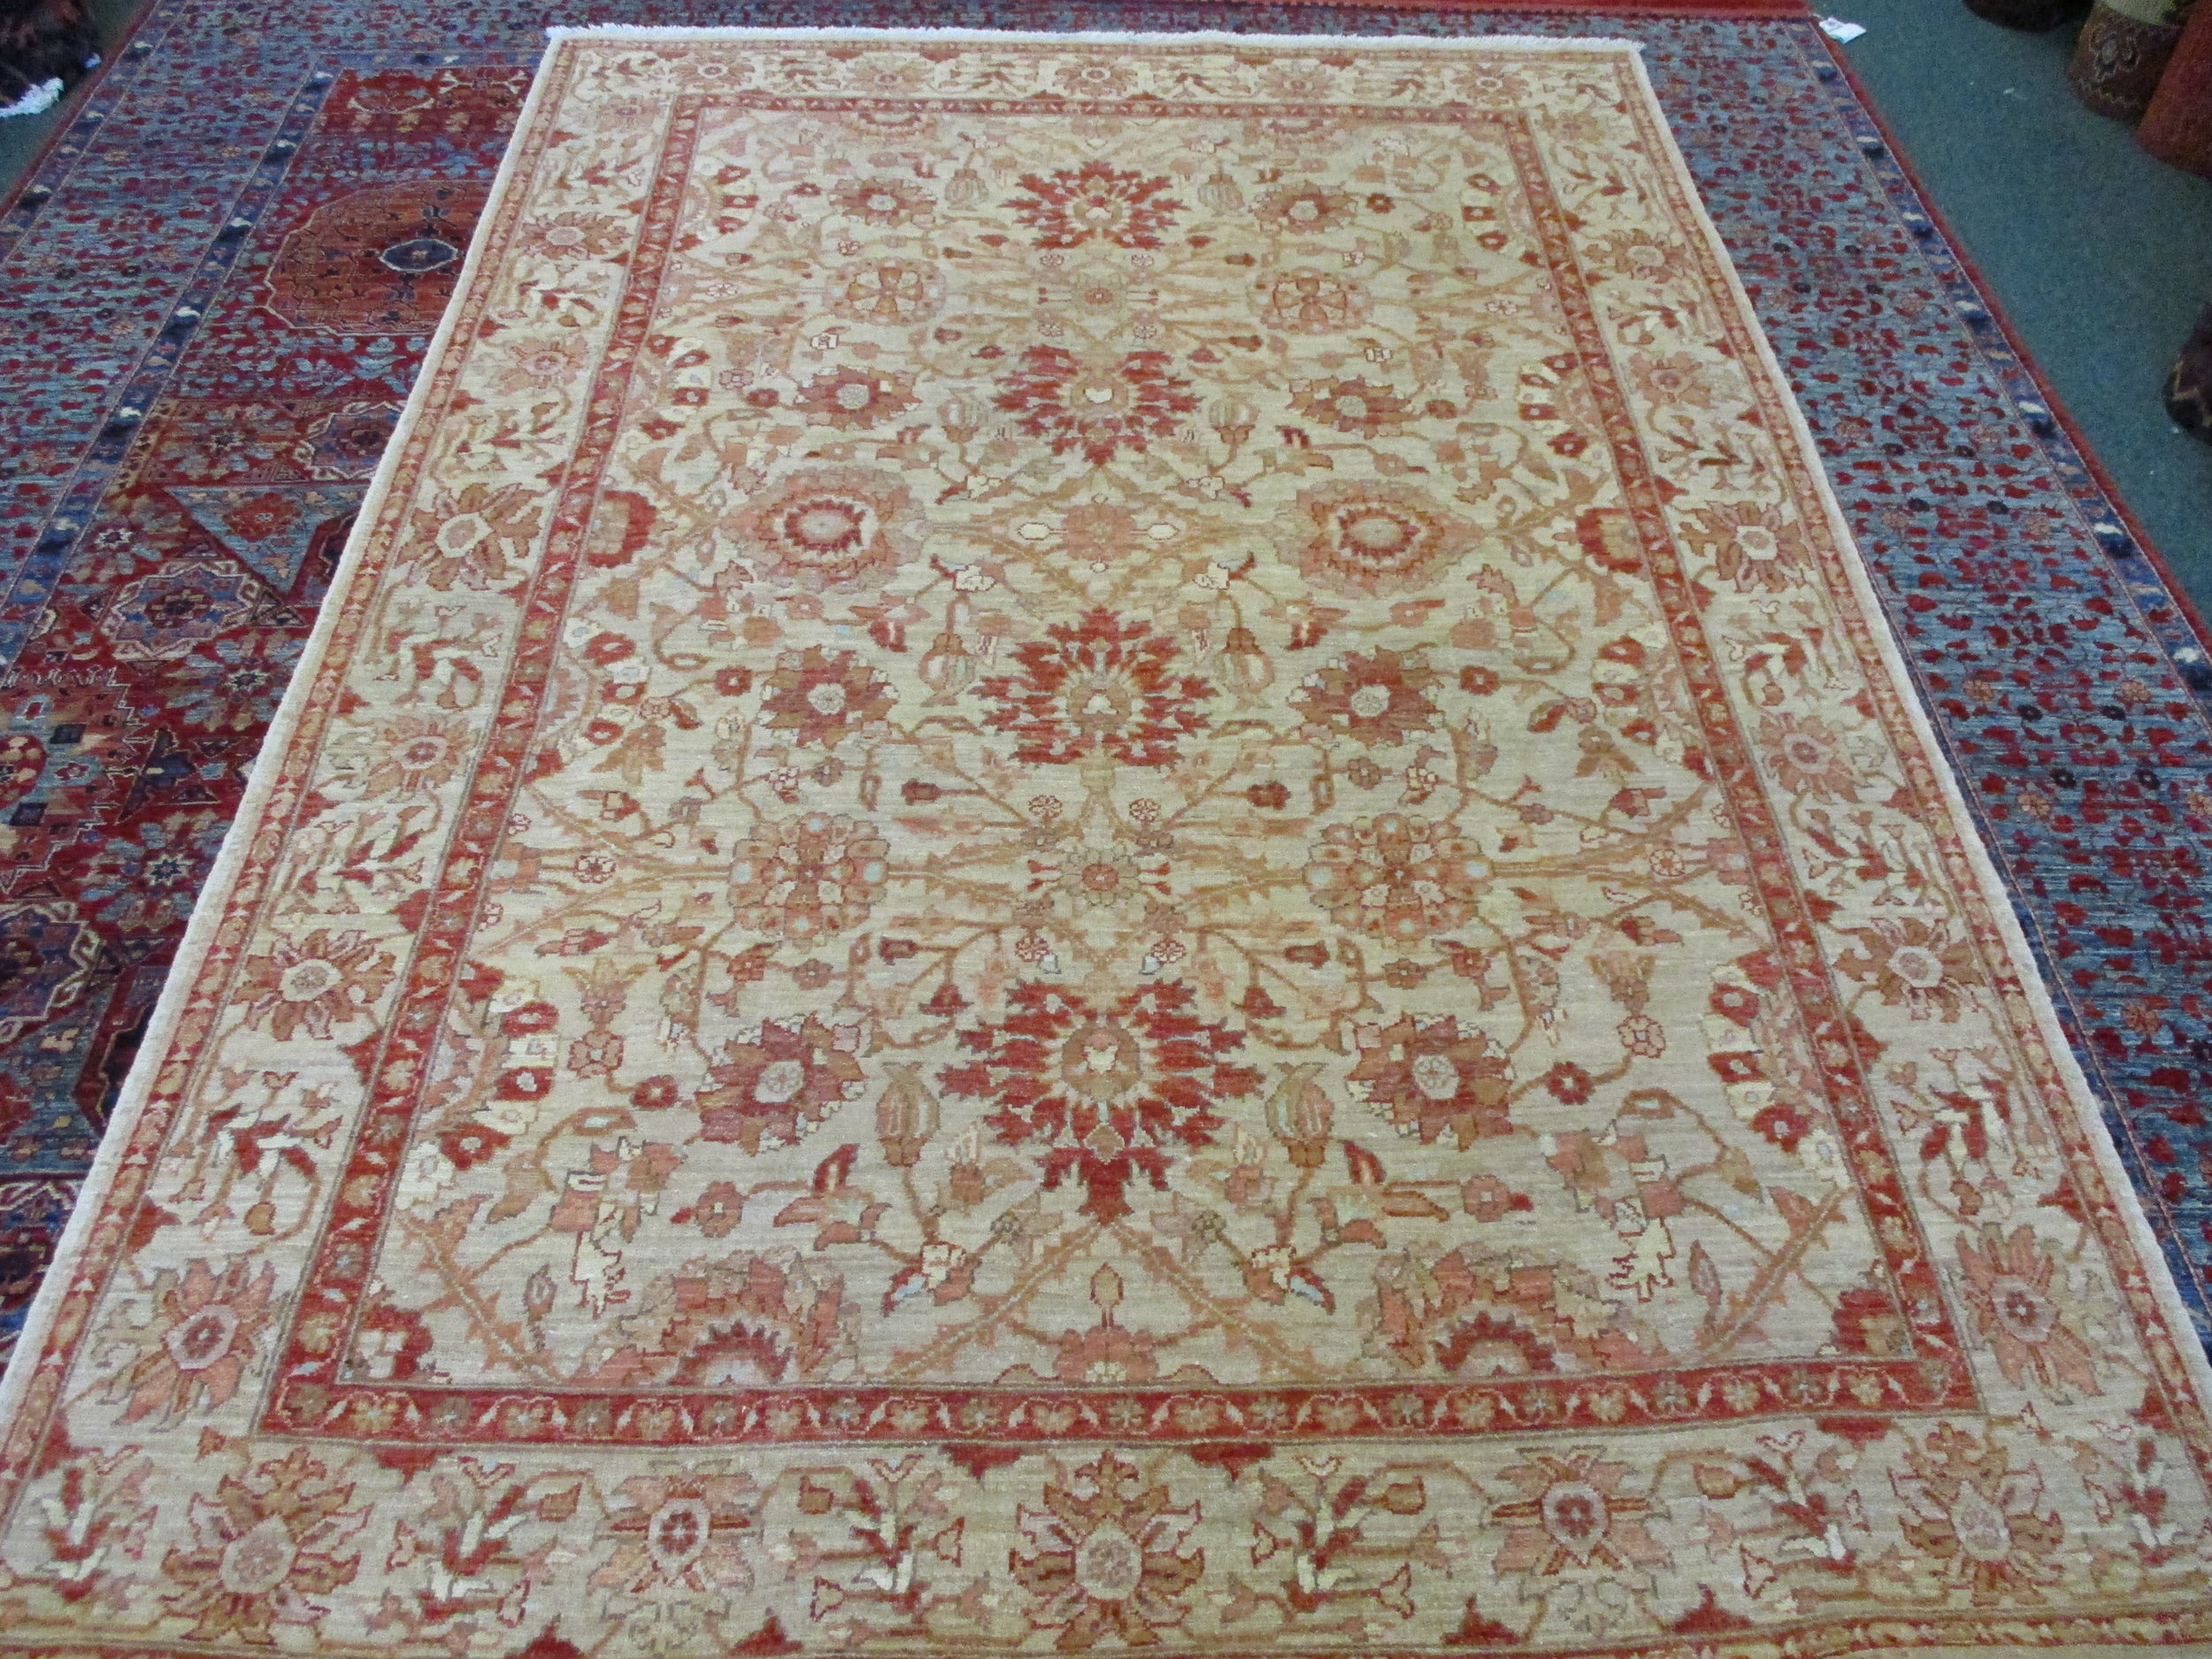 "#54) 4'10"" x 7'1"" Beautiful Afghan rug in soft colors!"